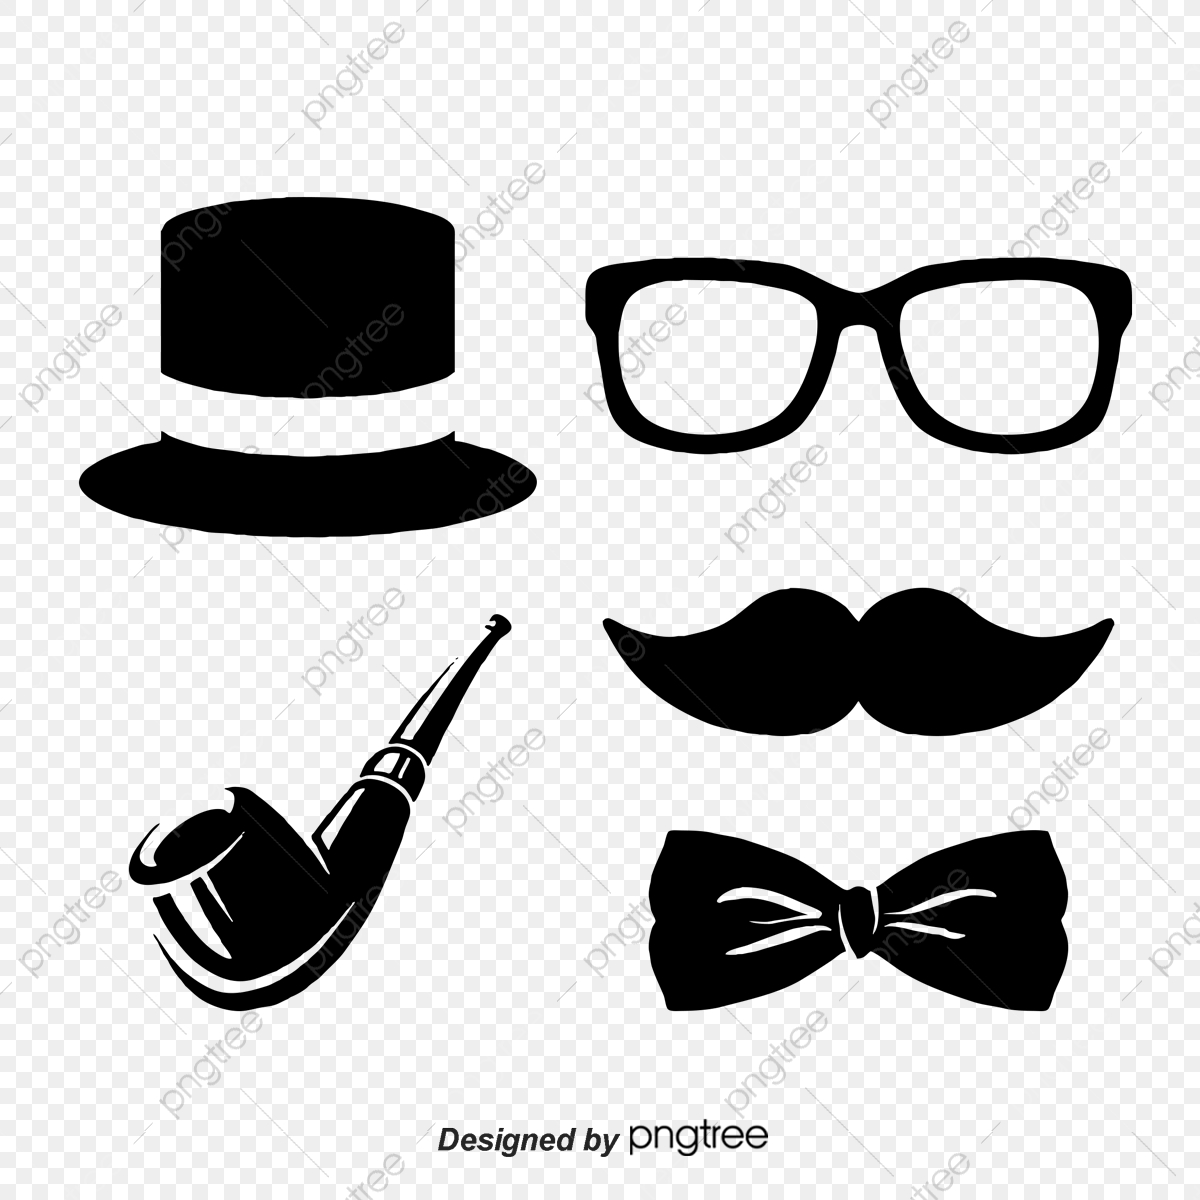 hight resolution of commercial use resource upgrade to premium plan and get license authorization upgradenow moustache